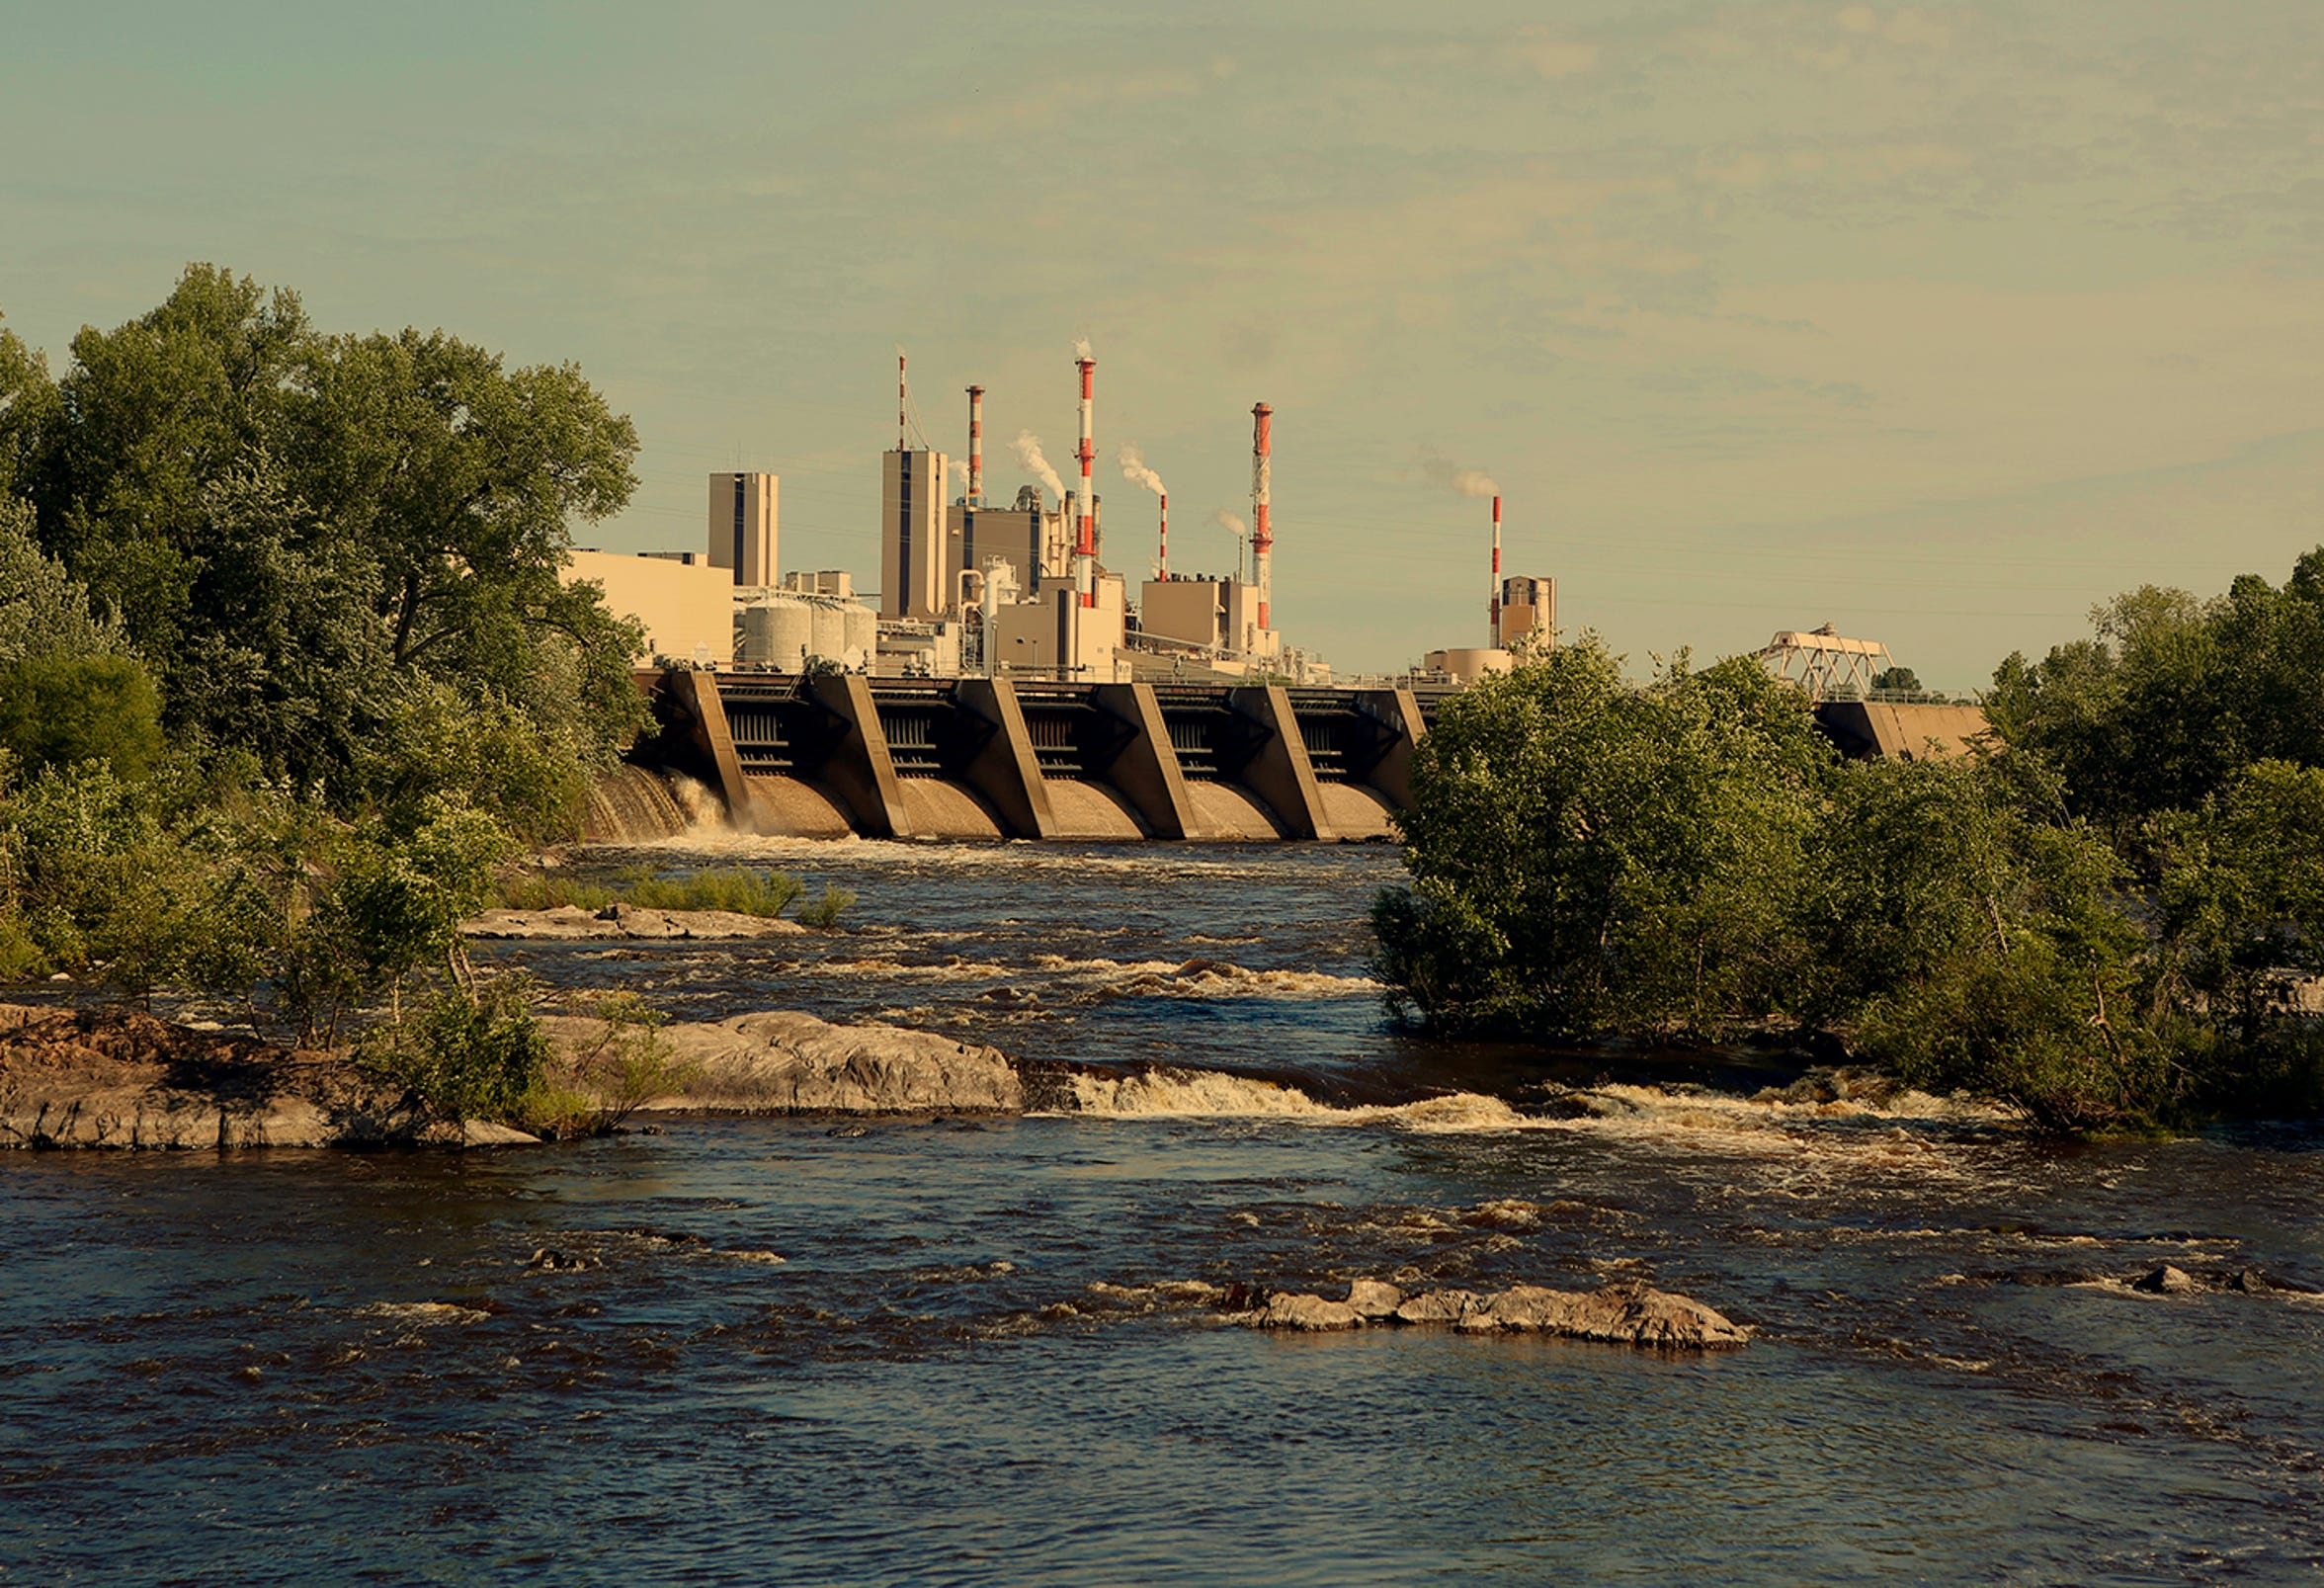 The Wisconsin River flows past a Verso Corporation paper mill which dominates the downtown area of Wisconsin Rapids. Cody Jackson was born and raised in the area.